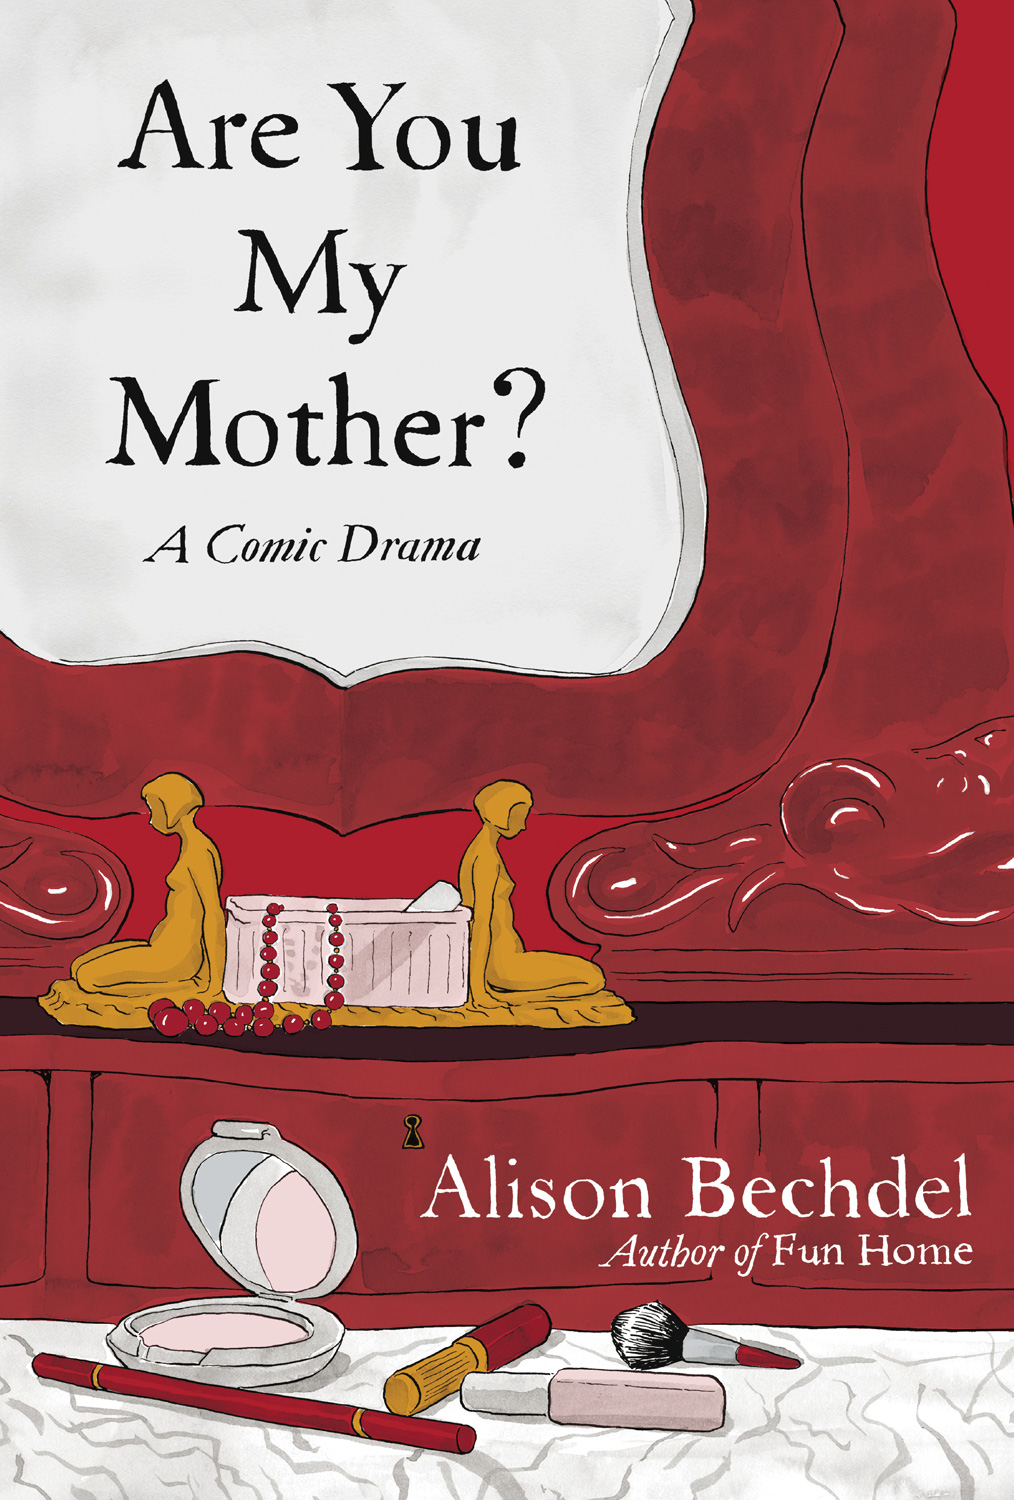 Are You My Mother Cover Q&A: Alison Bechdel, Author of Are You My Mother?: A Comic Drama